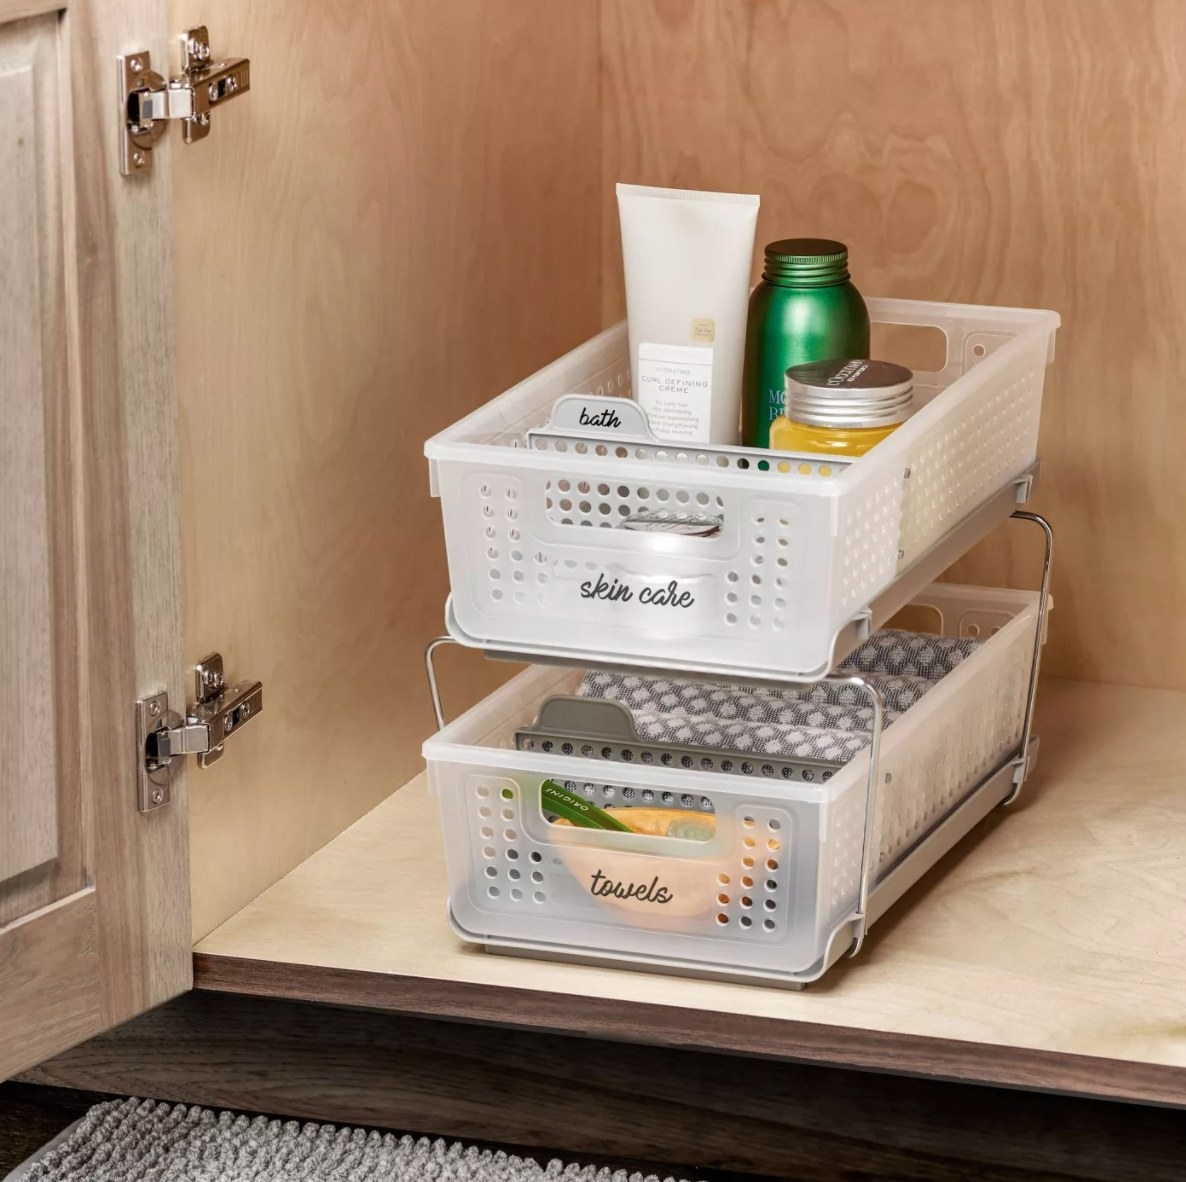 The two-tier organizer with dividers in frosted white/ clear